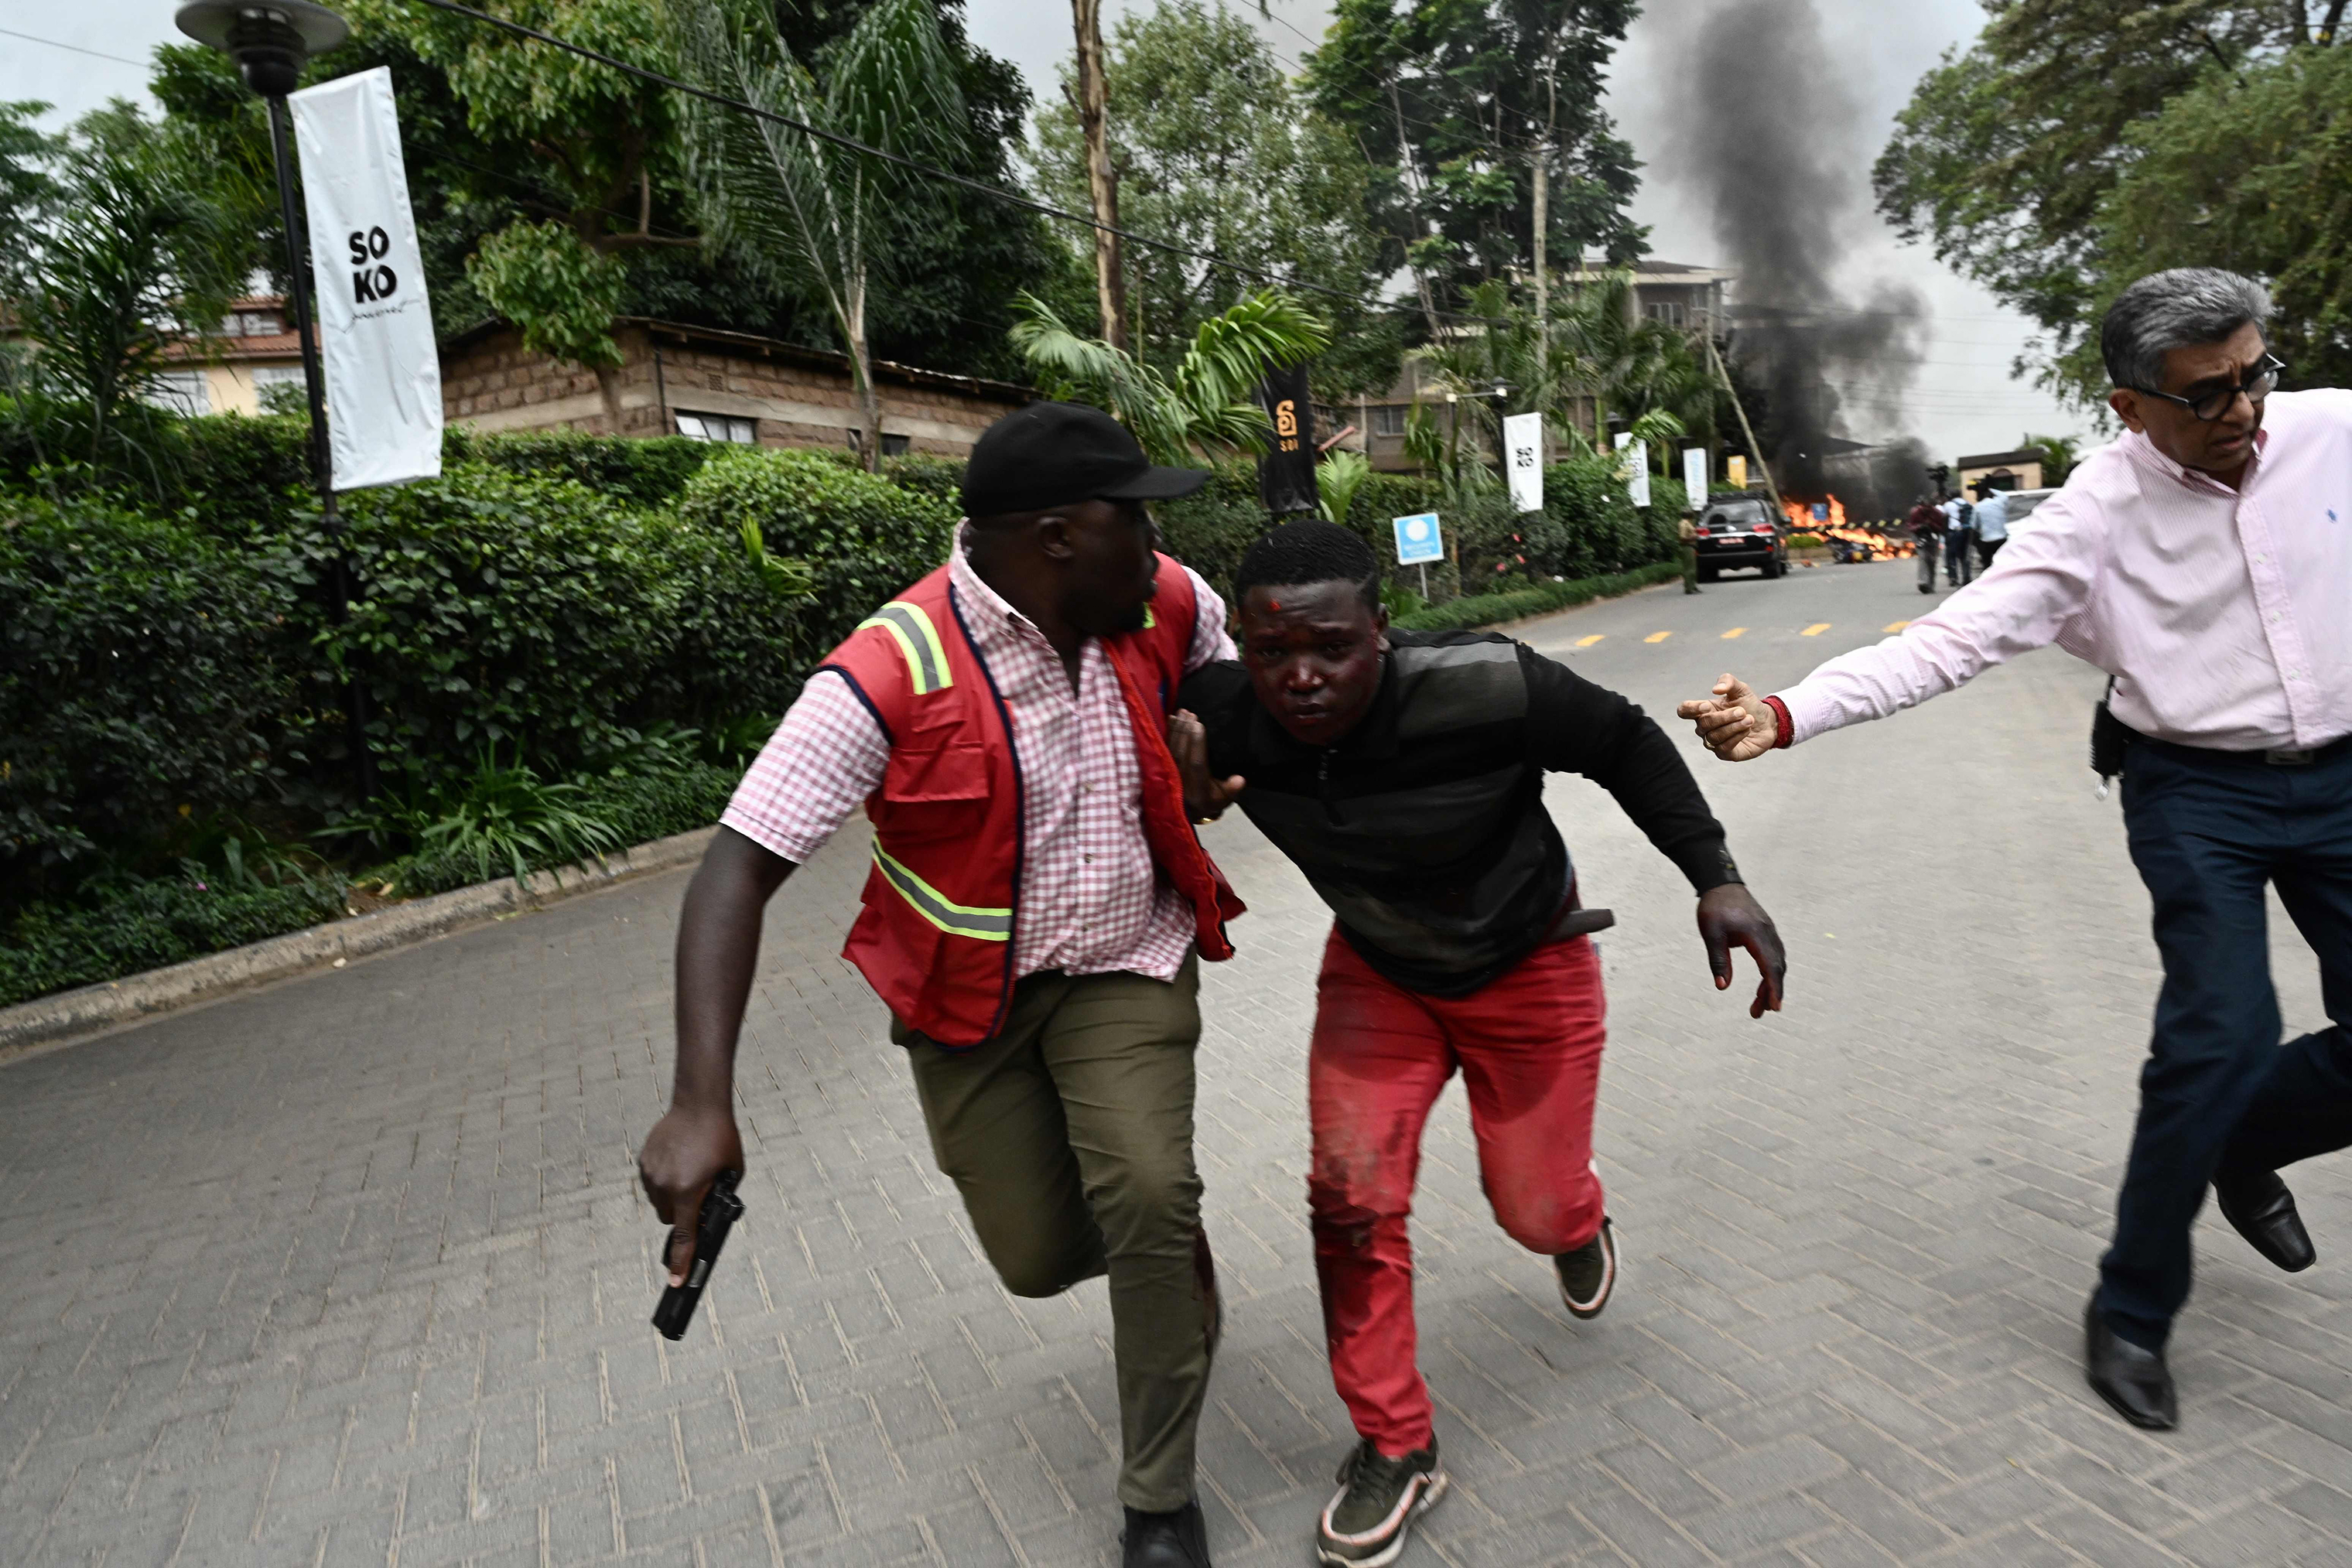 An injured man is evacuated from the scene of an explosion at a hotel complex in Nairobi.